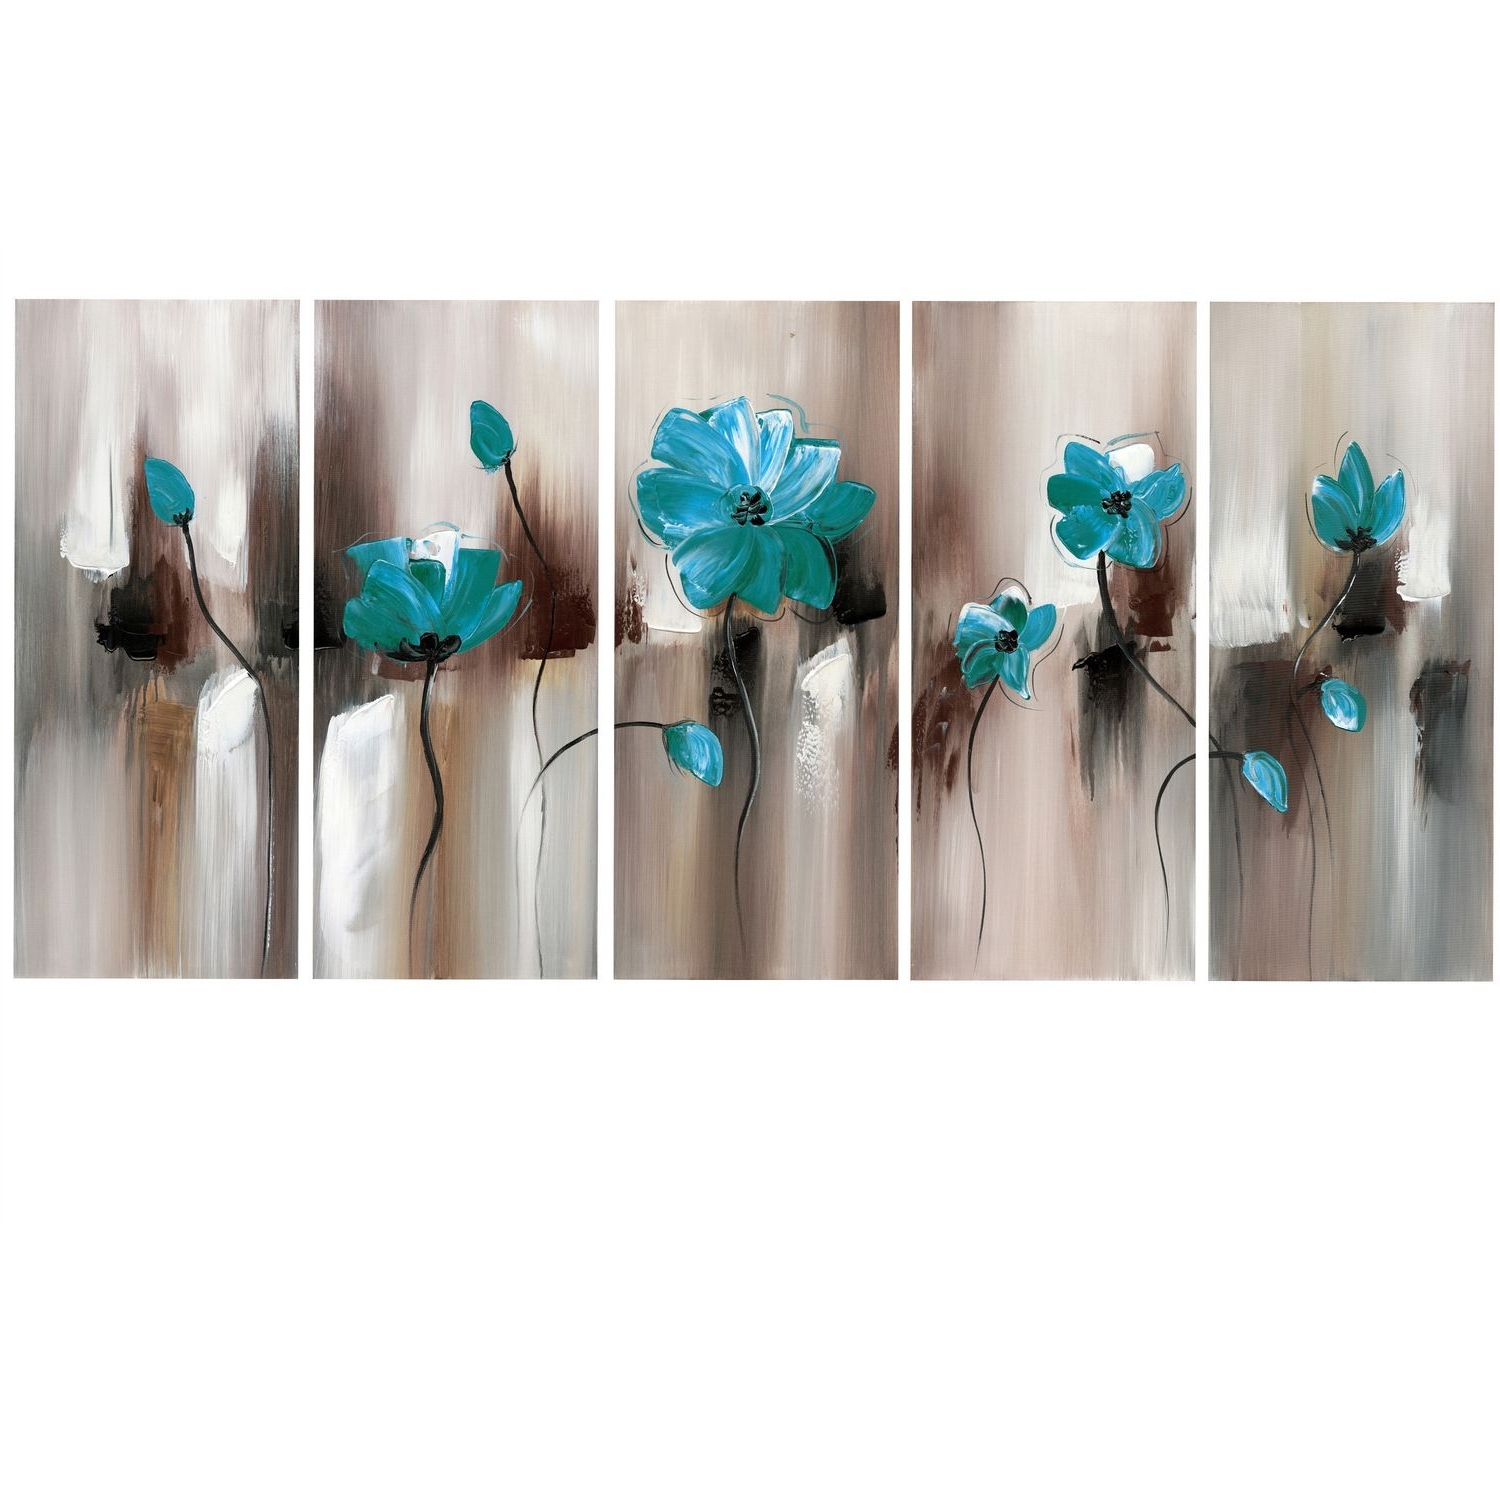 Latest Design Art  Green Emerald Modern Flower Art – Gallery Wrapped Pertaining To Canvas Wall Art In Canada (View 9 of 15)